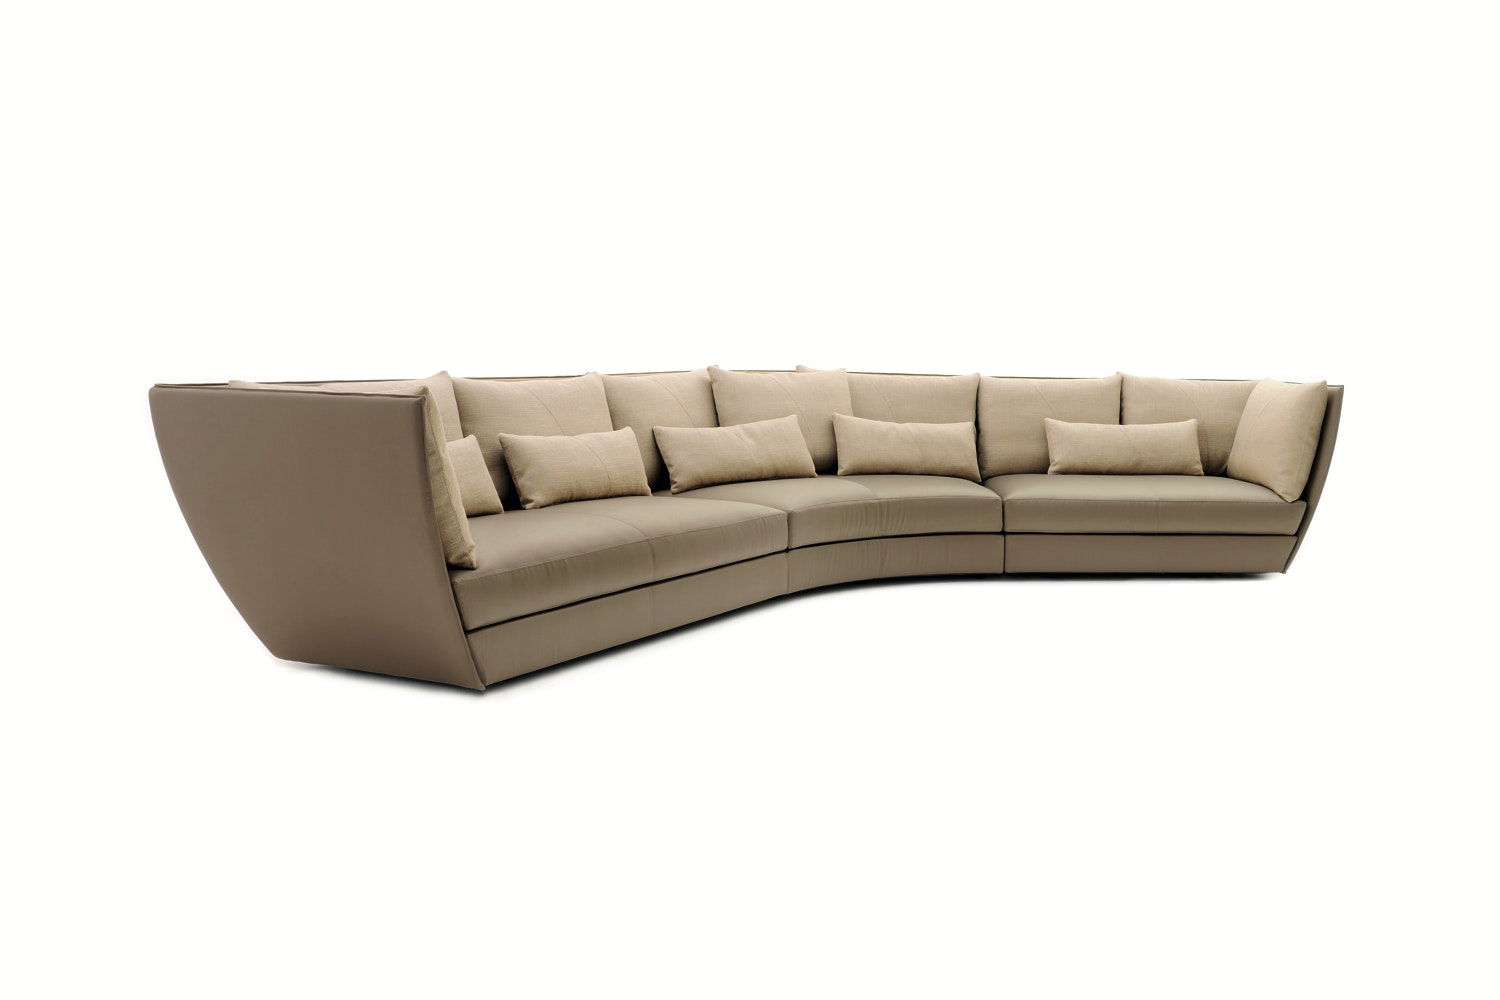 Dhow Sofa by Andrei Munteanu for Giorgetti